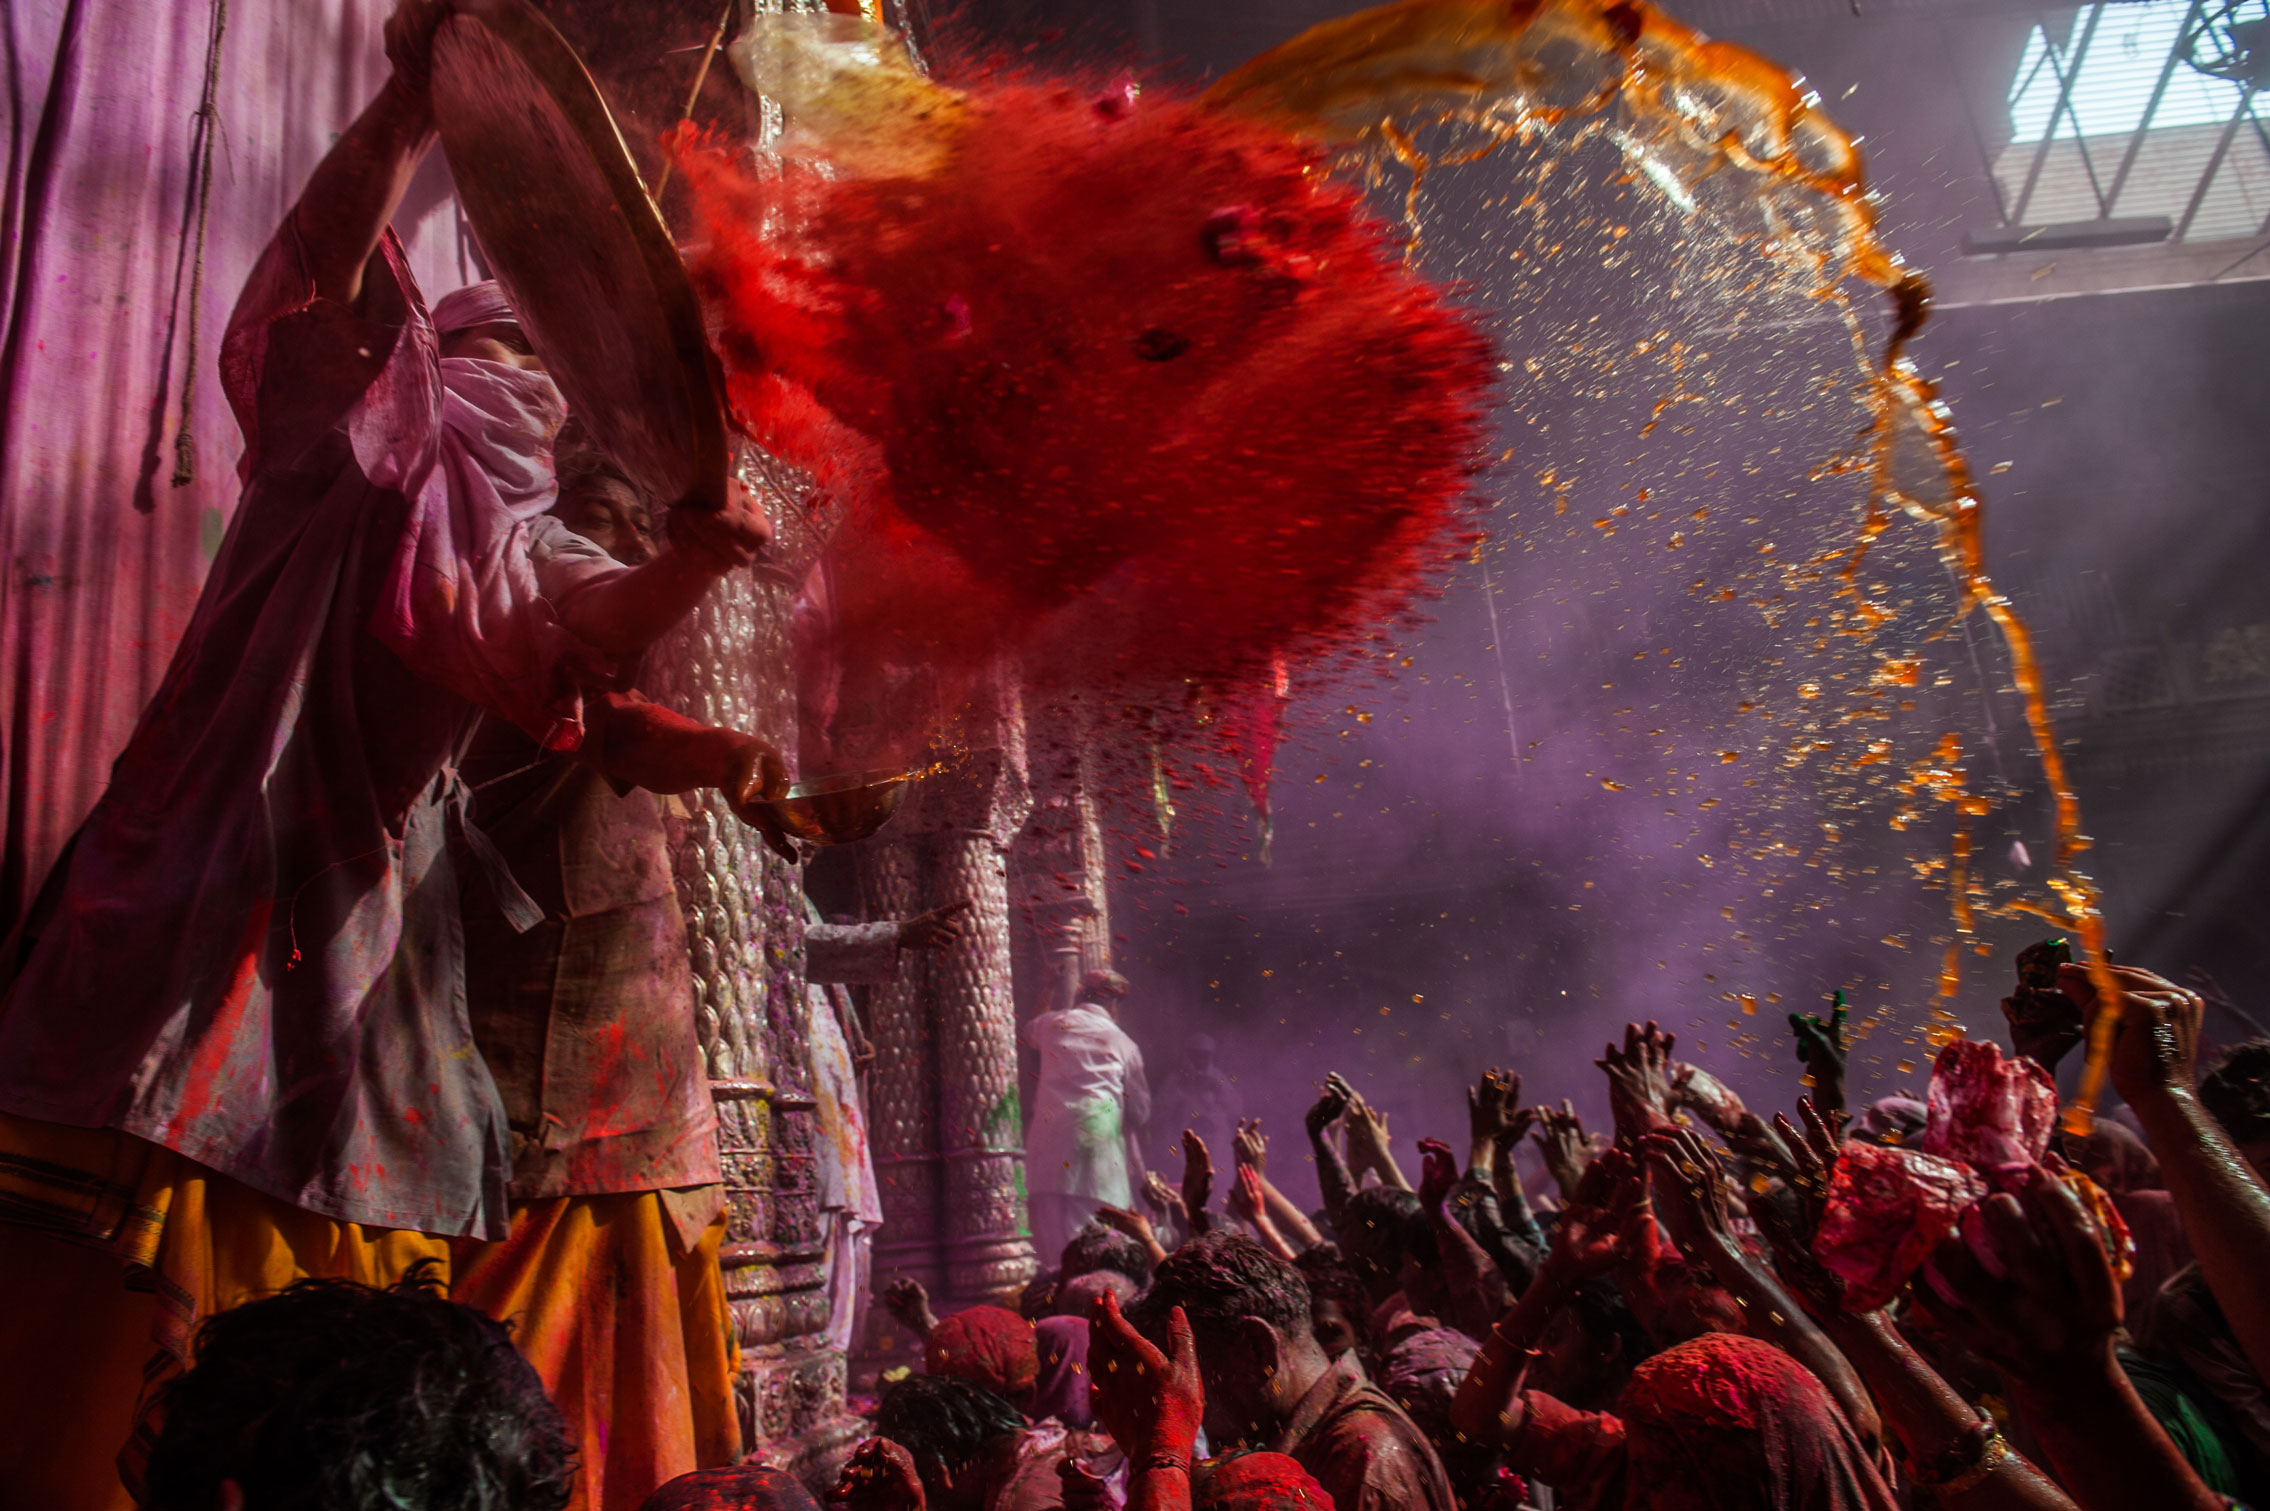 A Hindu priest throws coloured powder at devotees during Holi festival, at the Banke Bihari temple, on March 3, 2013.